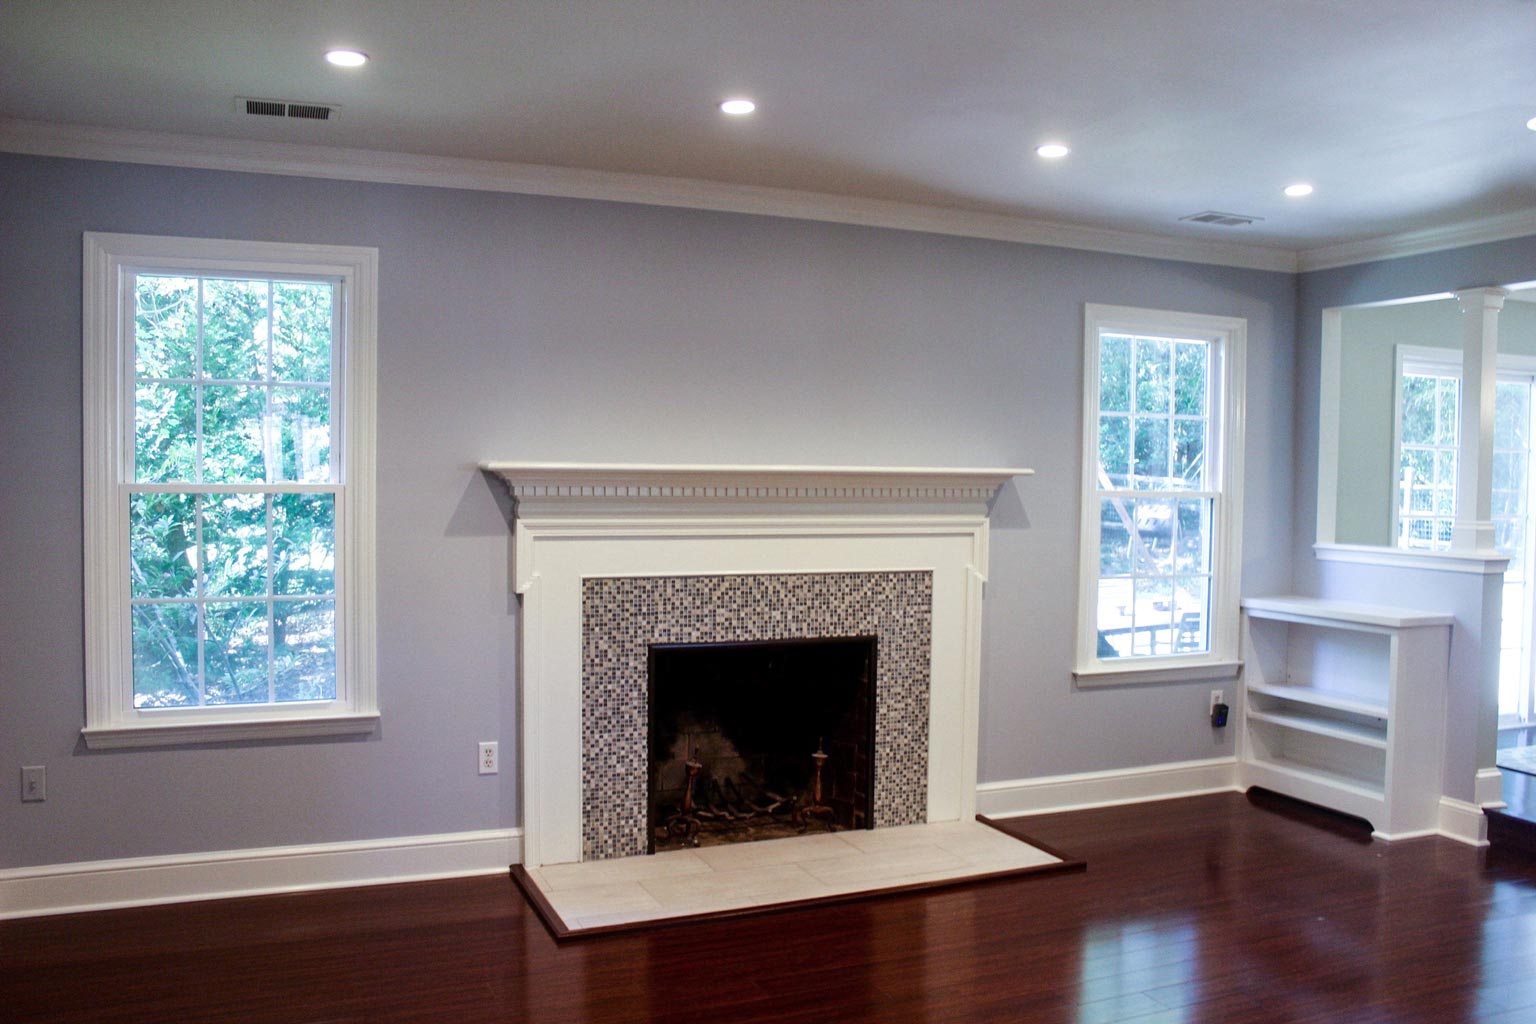 kitchen remodeling contractor vienna va. Whole House Renovations   Bianco Renovations Remodeling Contractor